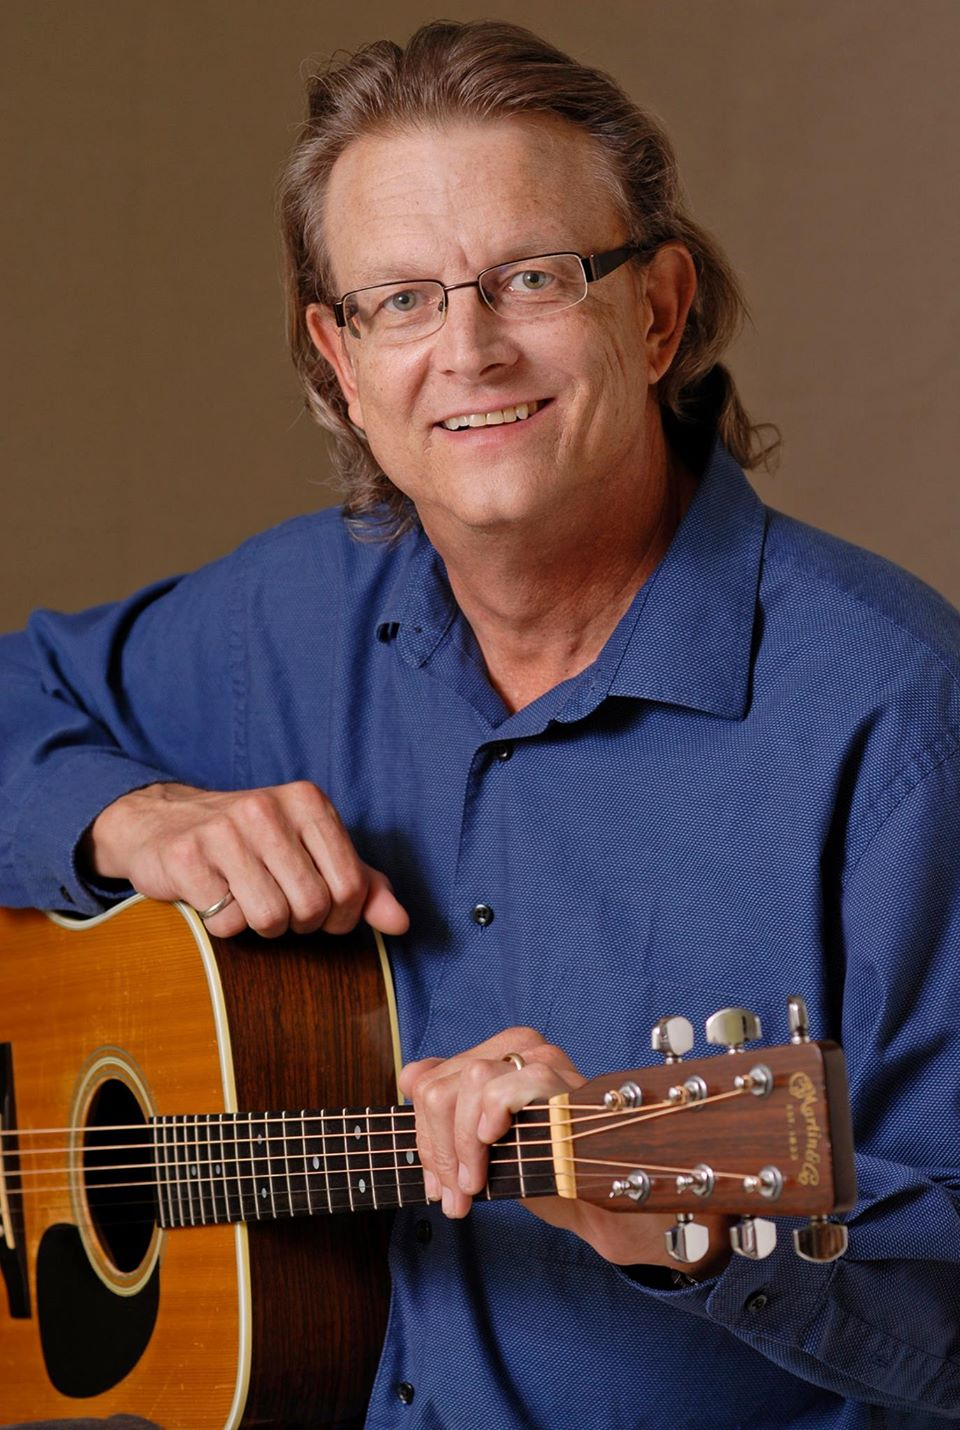 Doug Durant in a portrait taken by his wife, Laura.